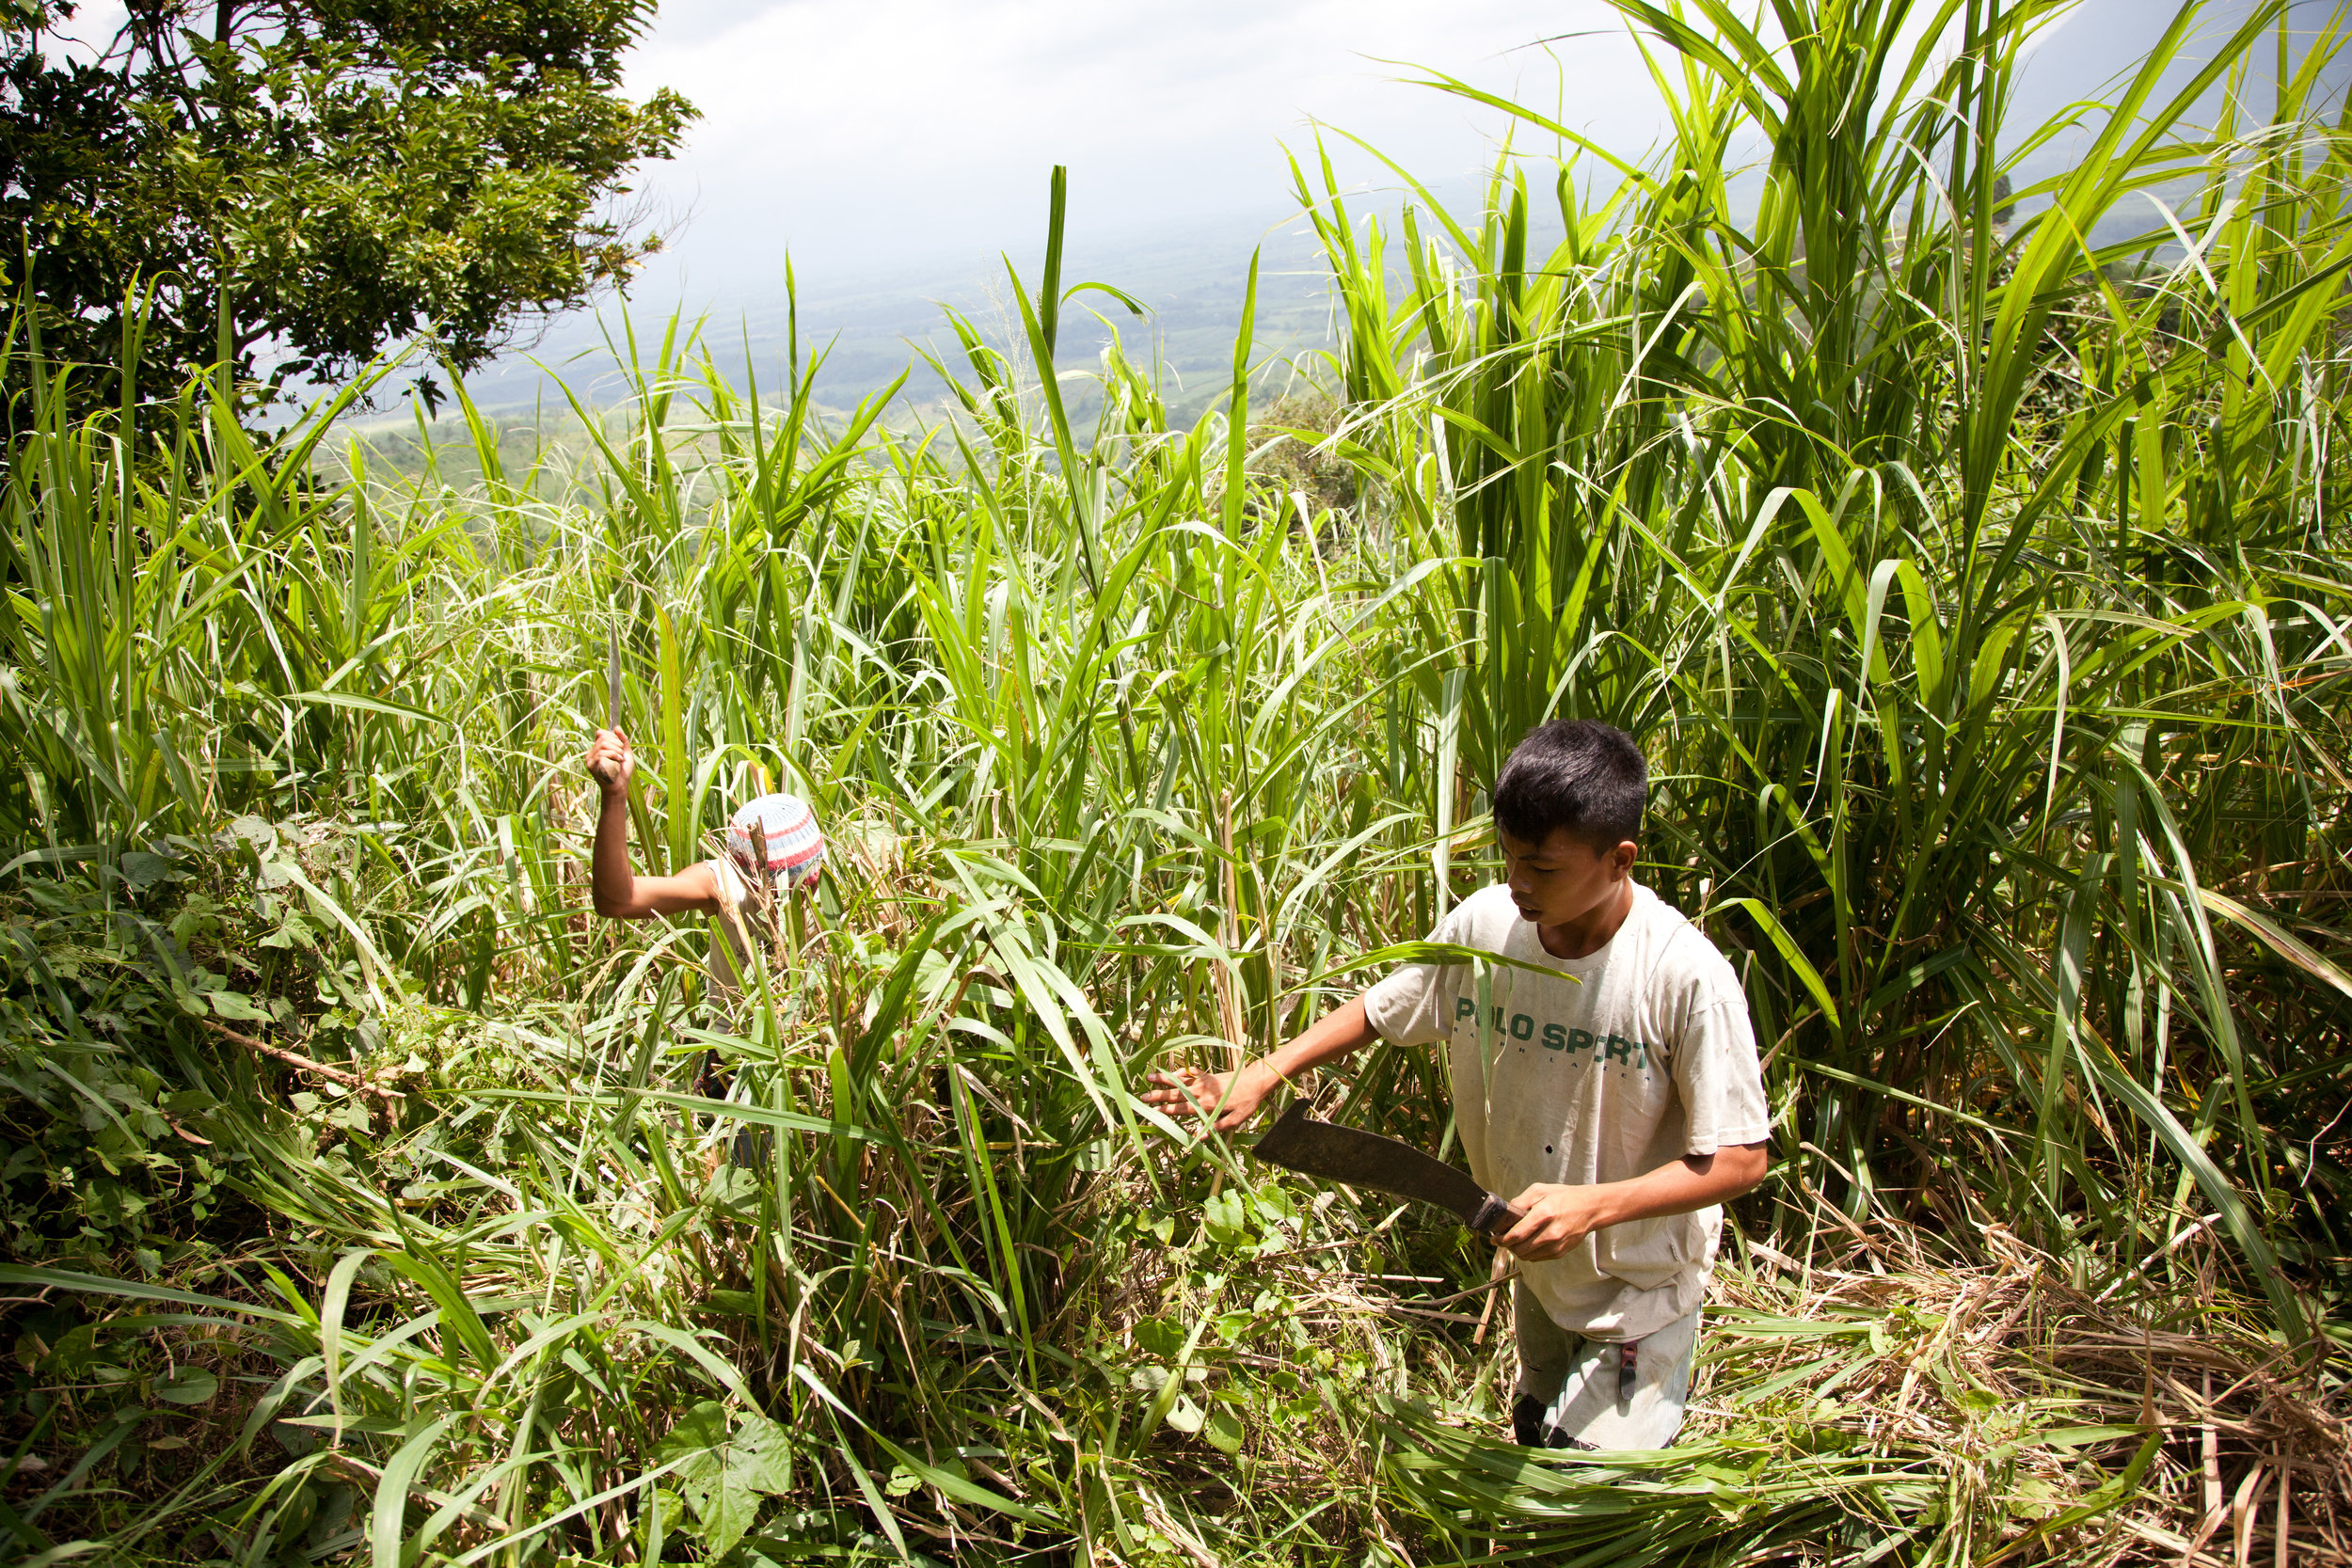 Sugarcane is the biggest industry in Negros Occidental and the main employer of child laborers.